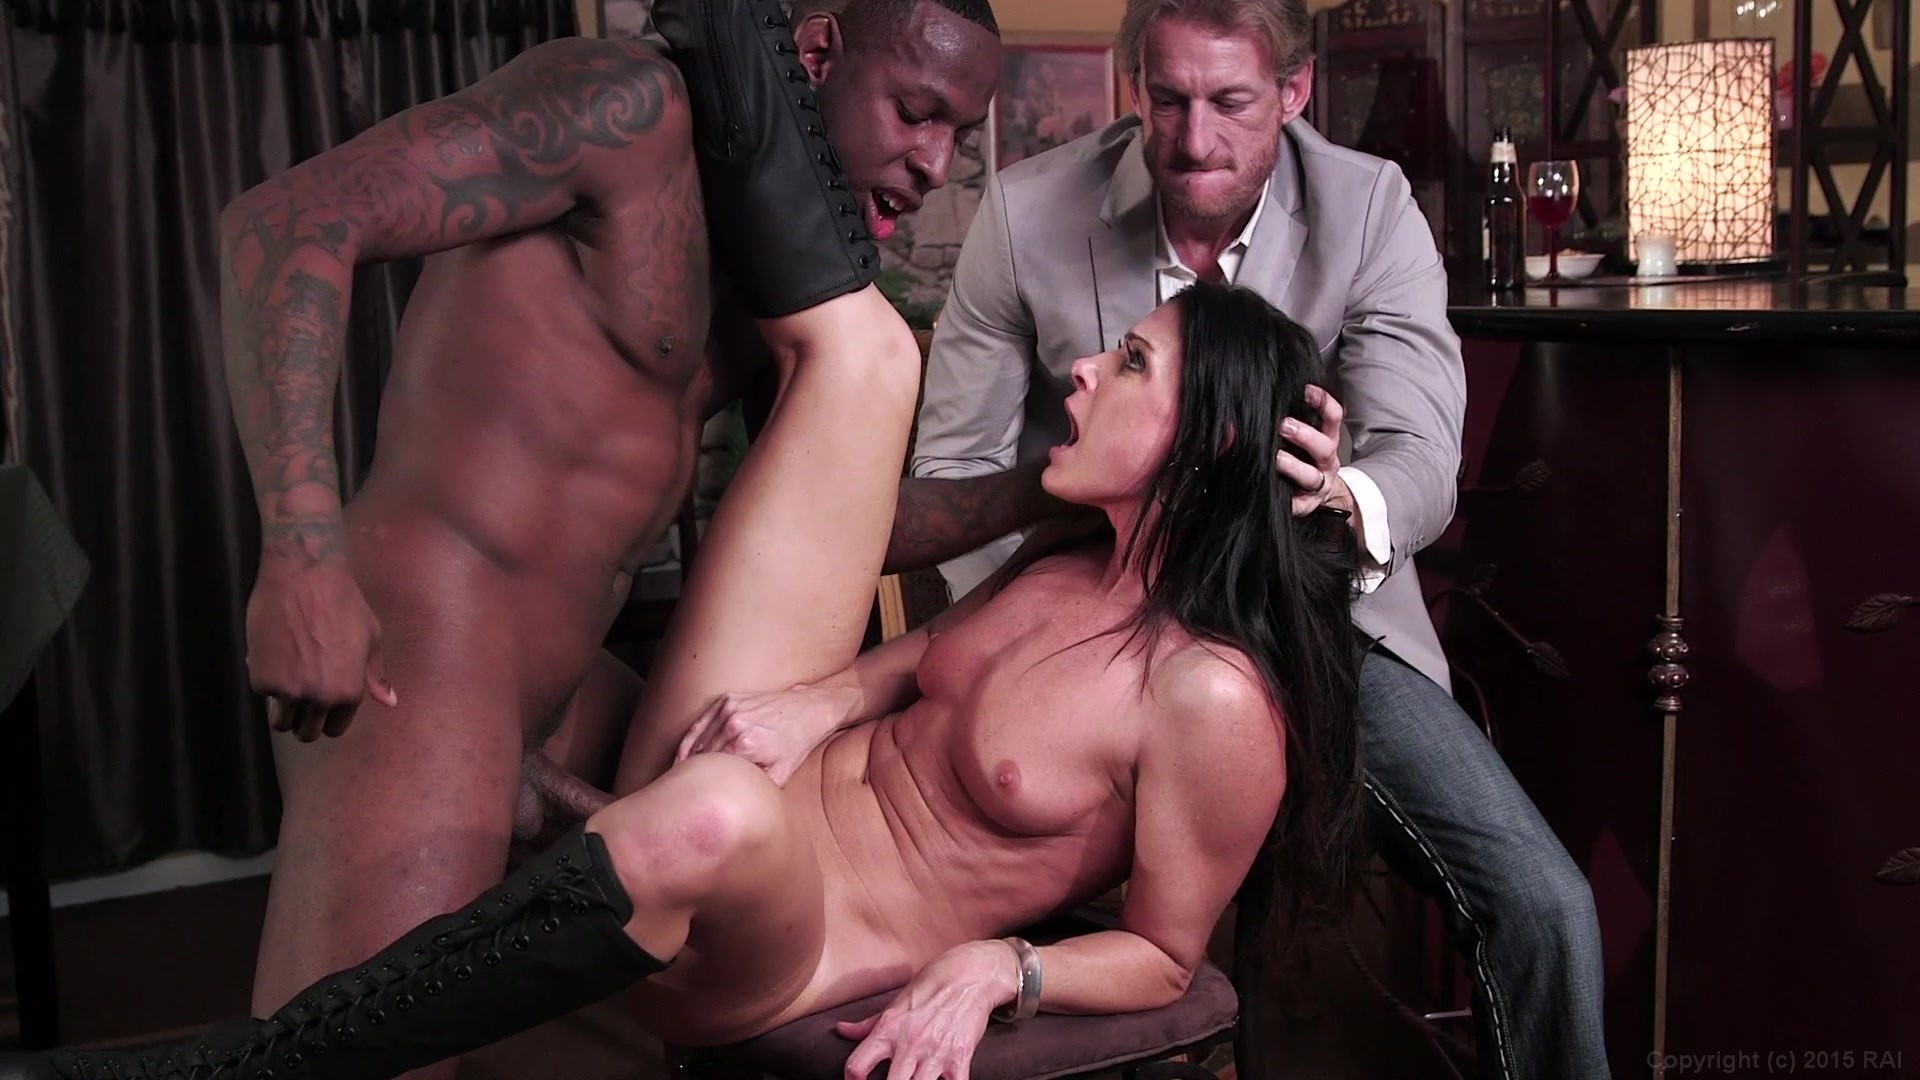 Beautiful Brunette India Summer Has Sex with a Hung Black Stud Starring: India Summer Jon Jon